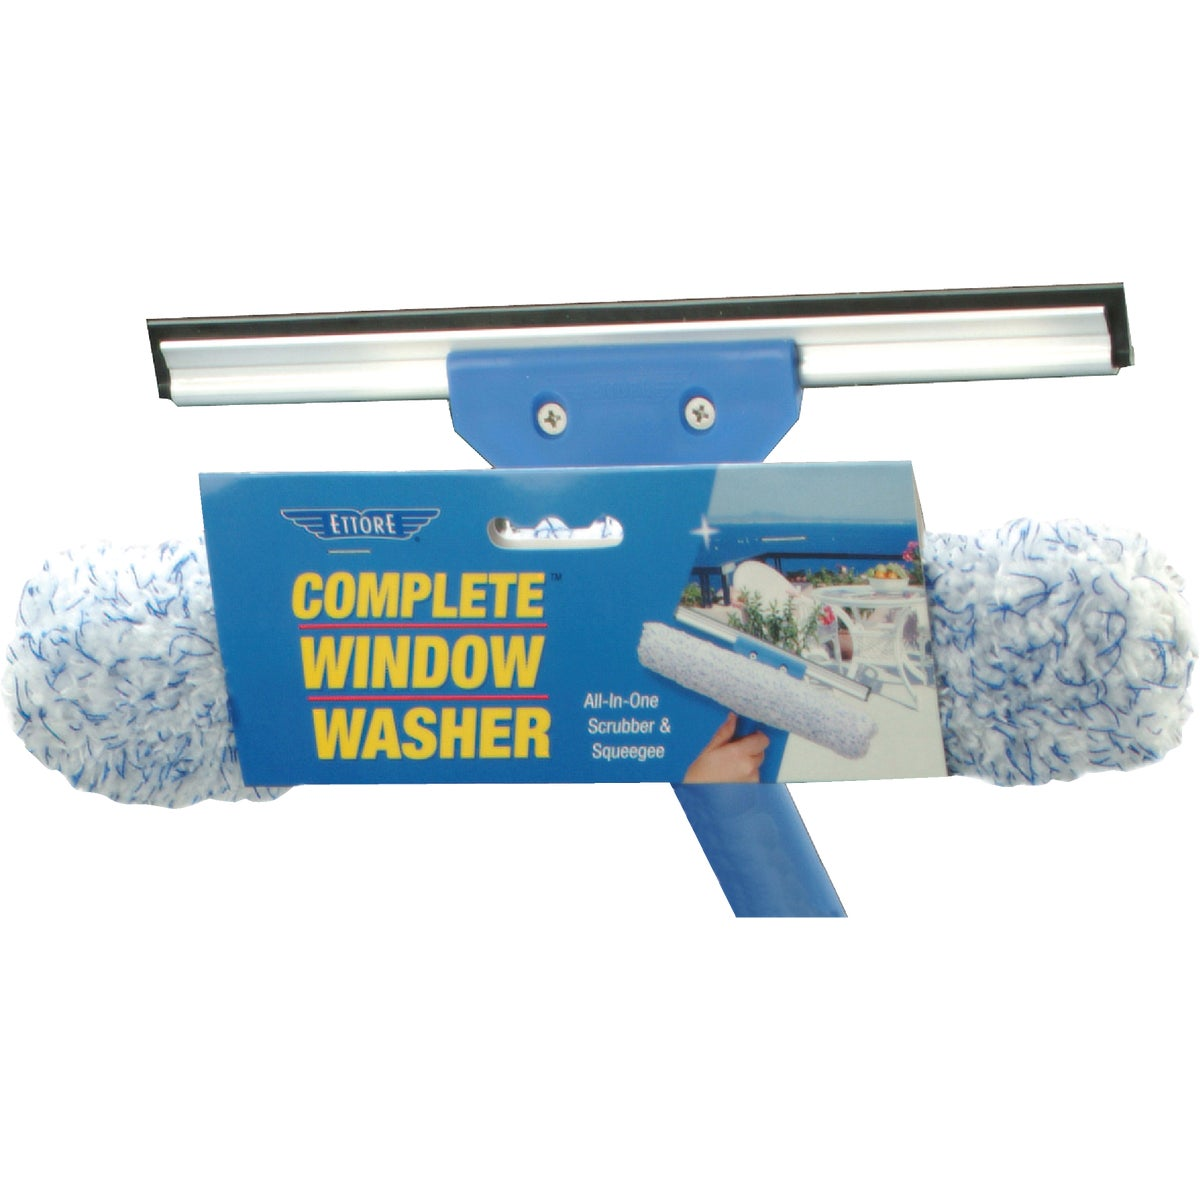 WINDOW SCRUBBER/SQUEEGEE - 15010 by Ettore Products Co